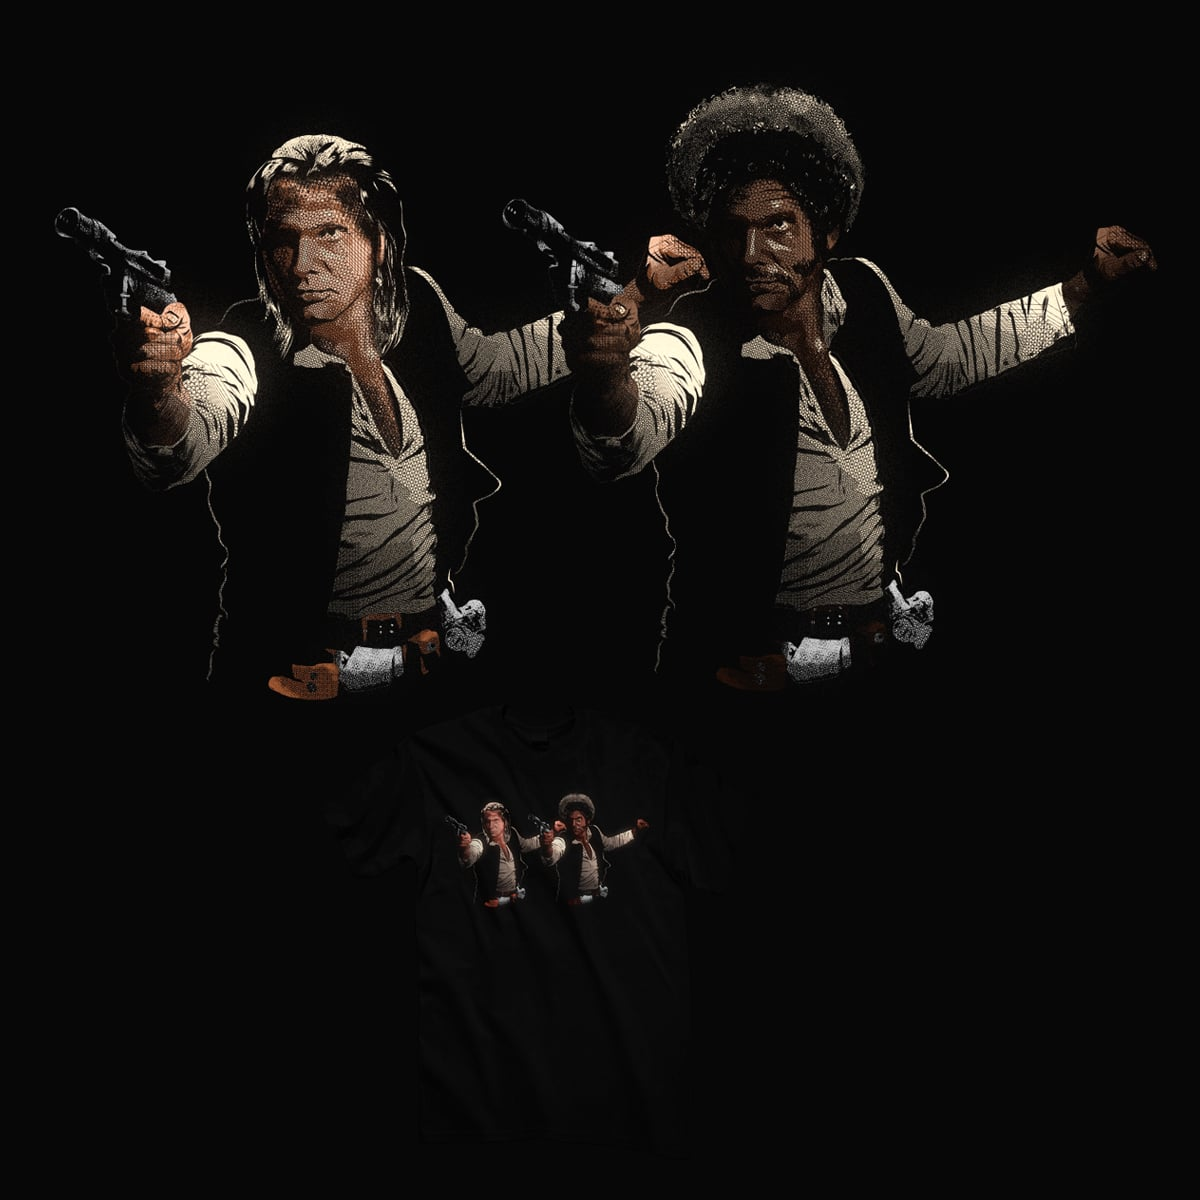 Han Duo by kooky love on Threadless